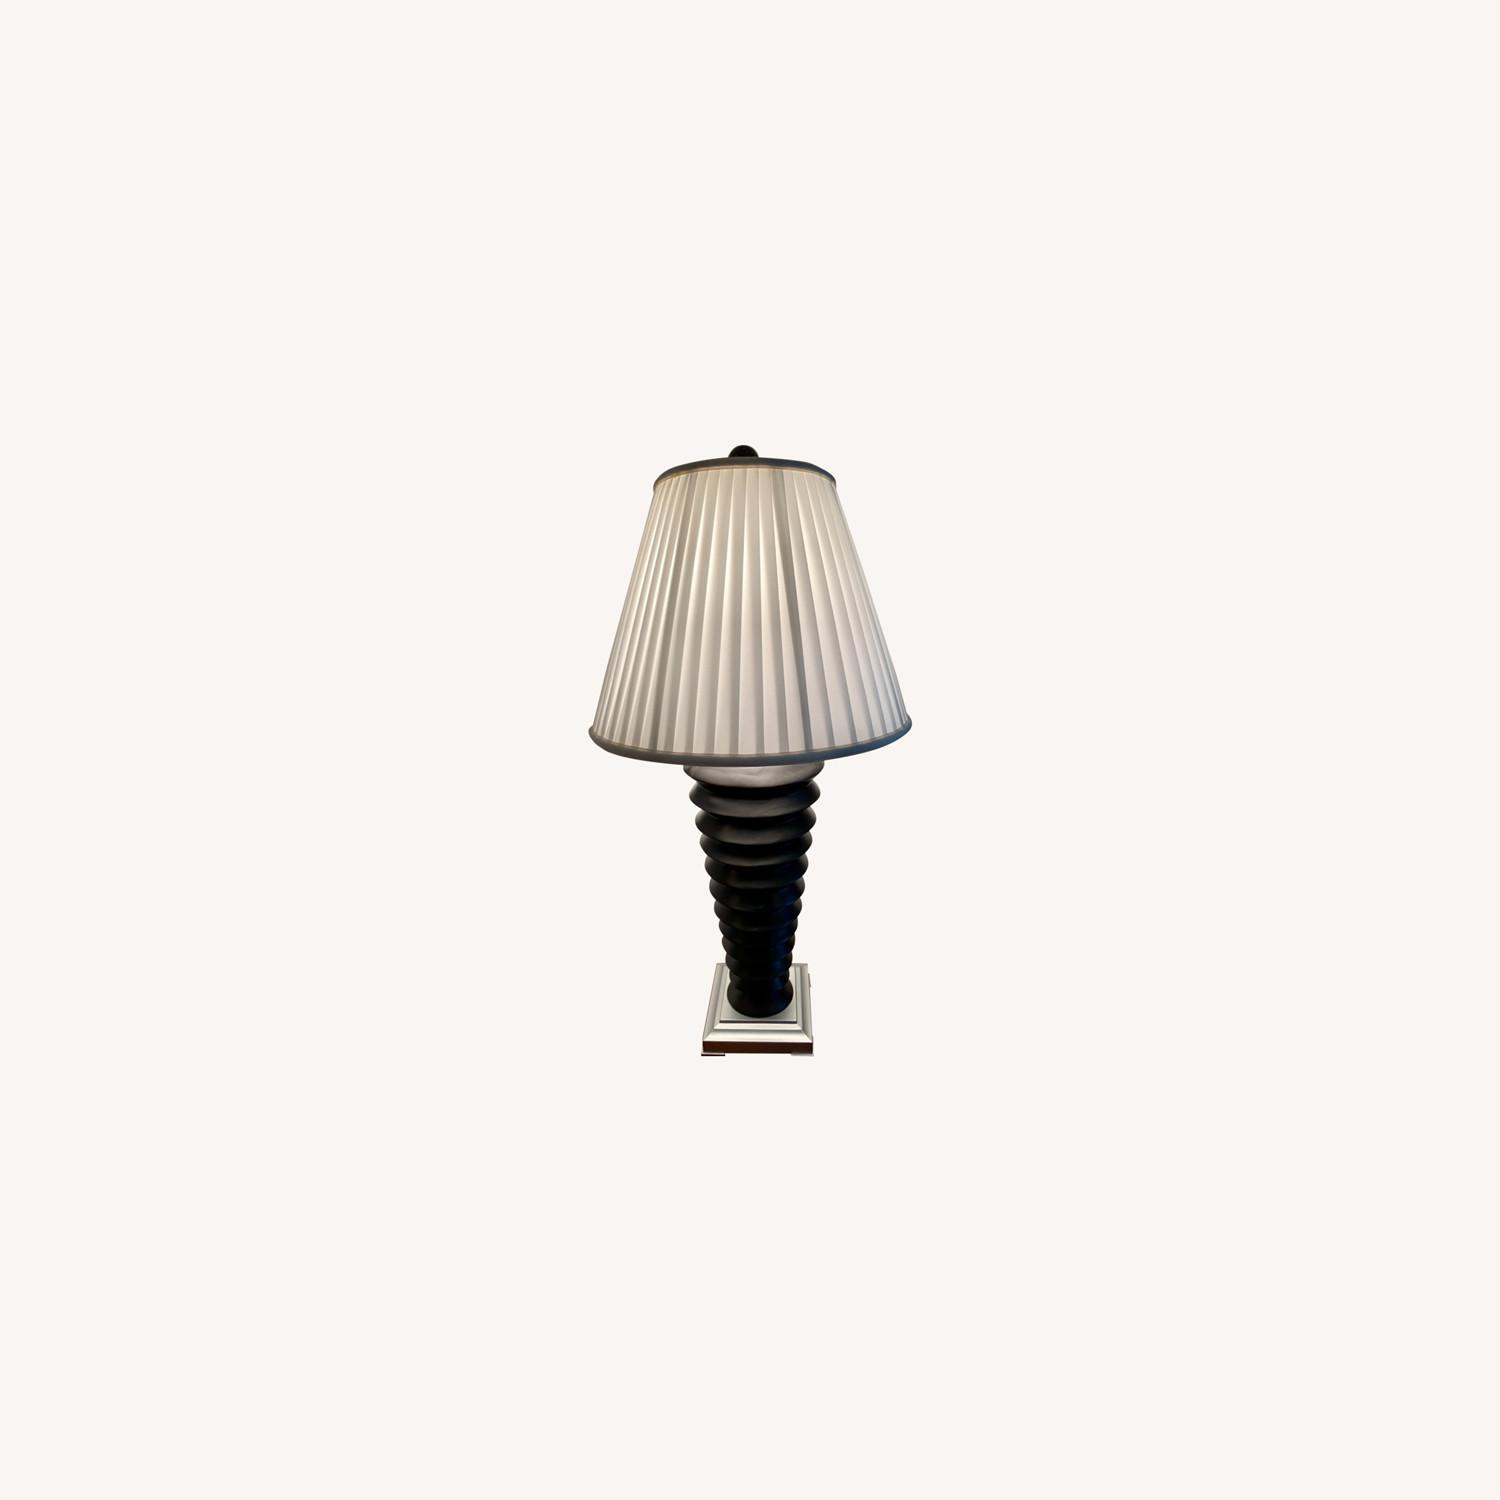 Black and White Nightstand Lamps - image-0